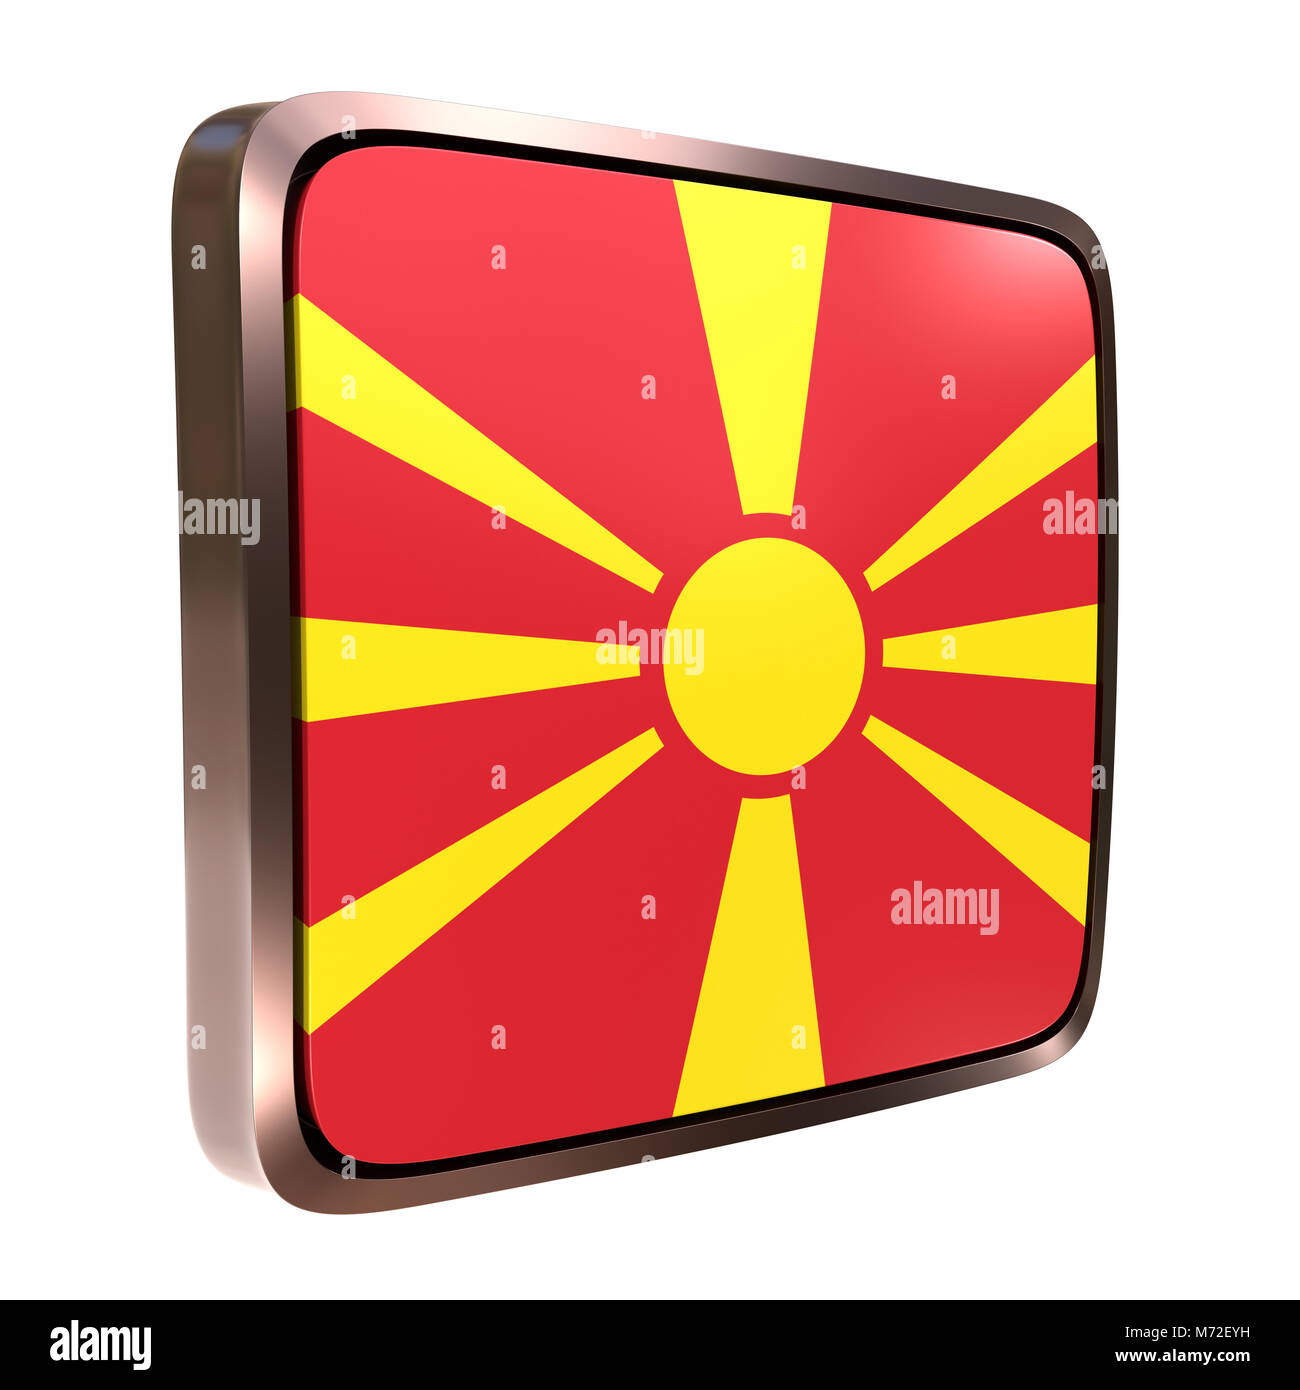 3d rendering of a Macedonia flag icon with a metallic frame. Isolated on white background. - Stock Image